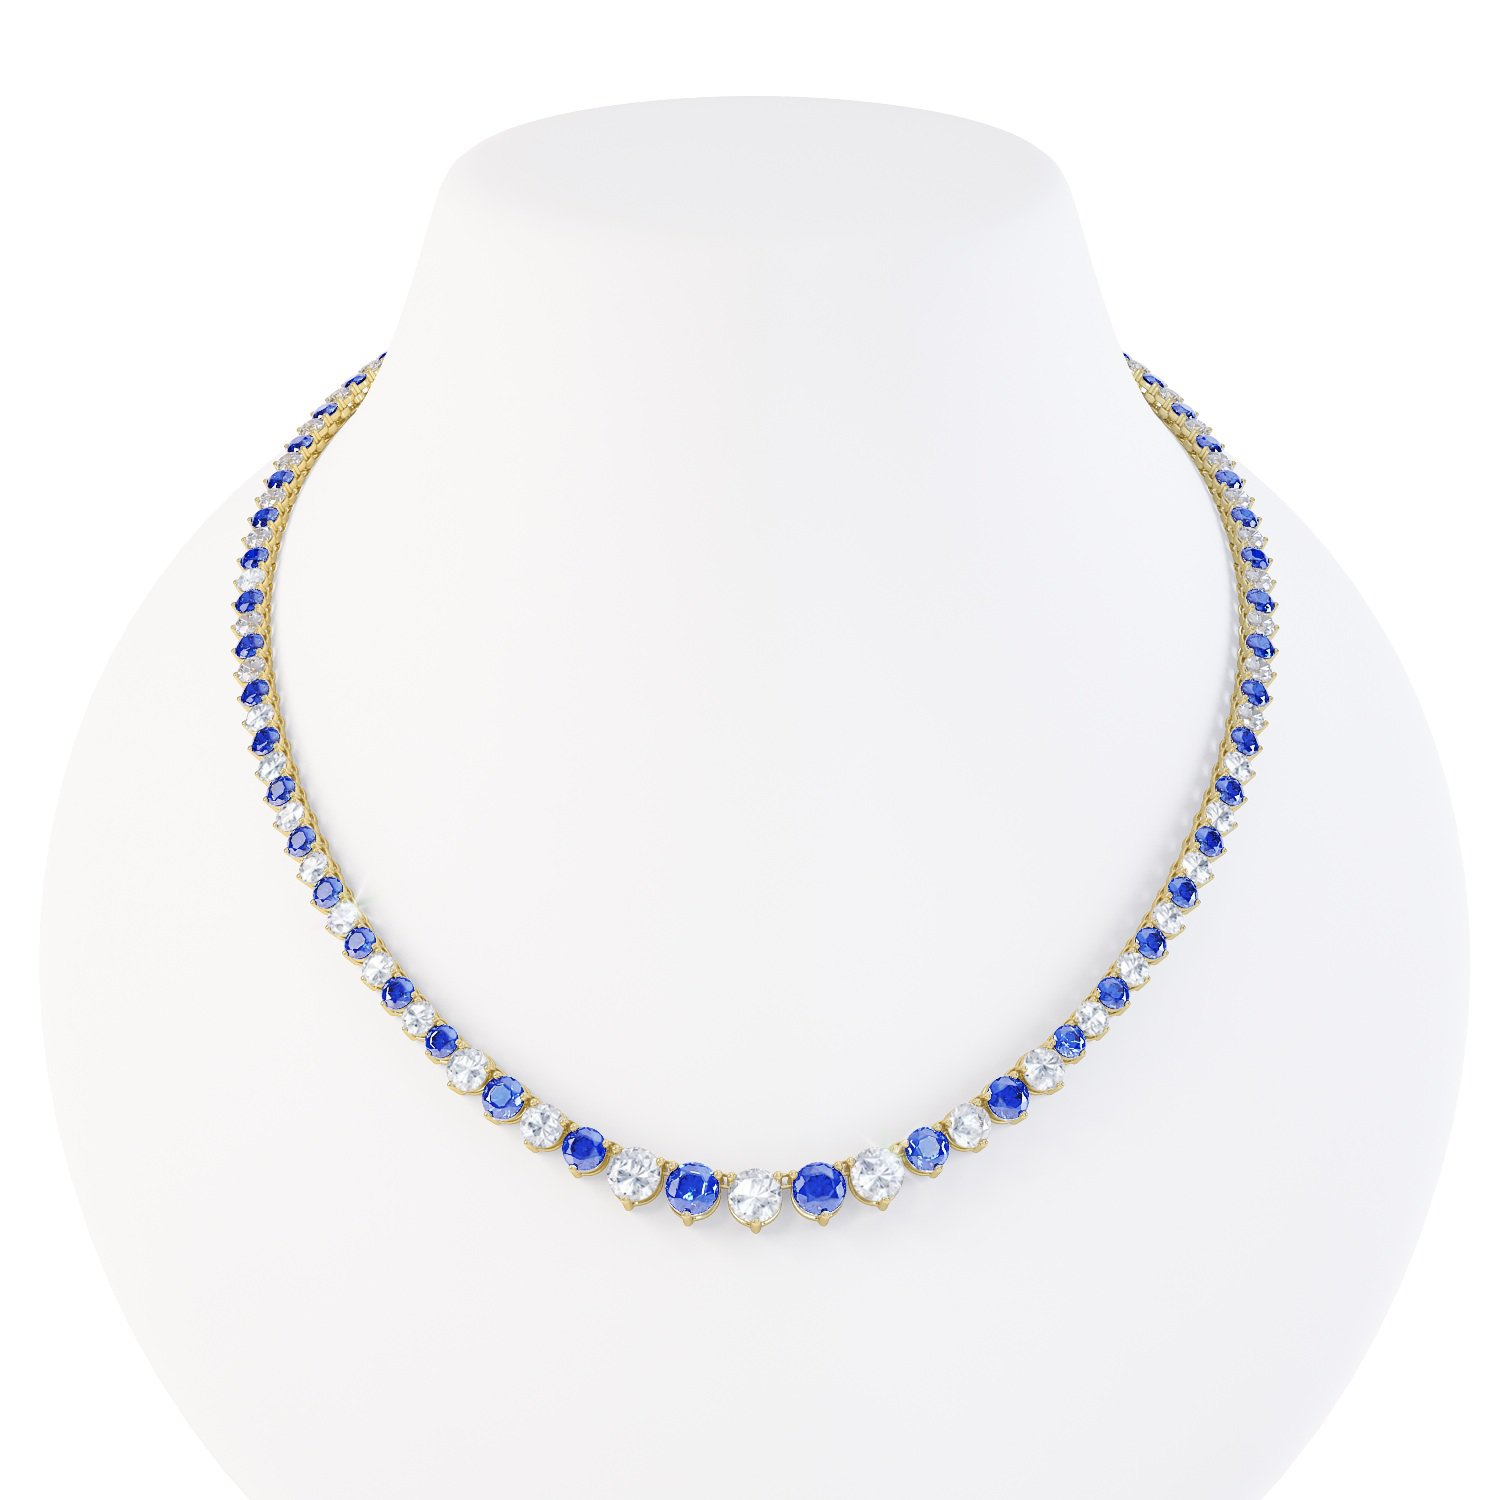 Eternity Blue and White Sapphire 18ct Gold Vermeil Tennis Necklace